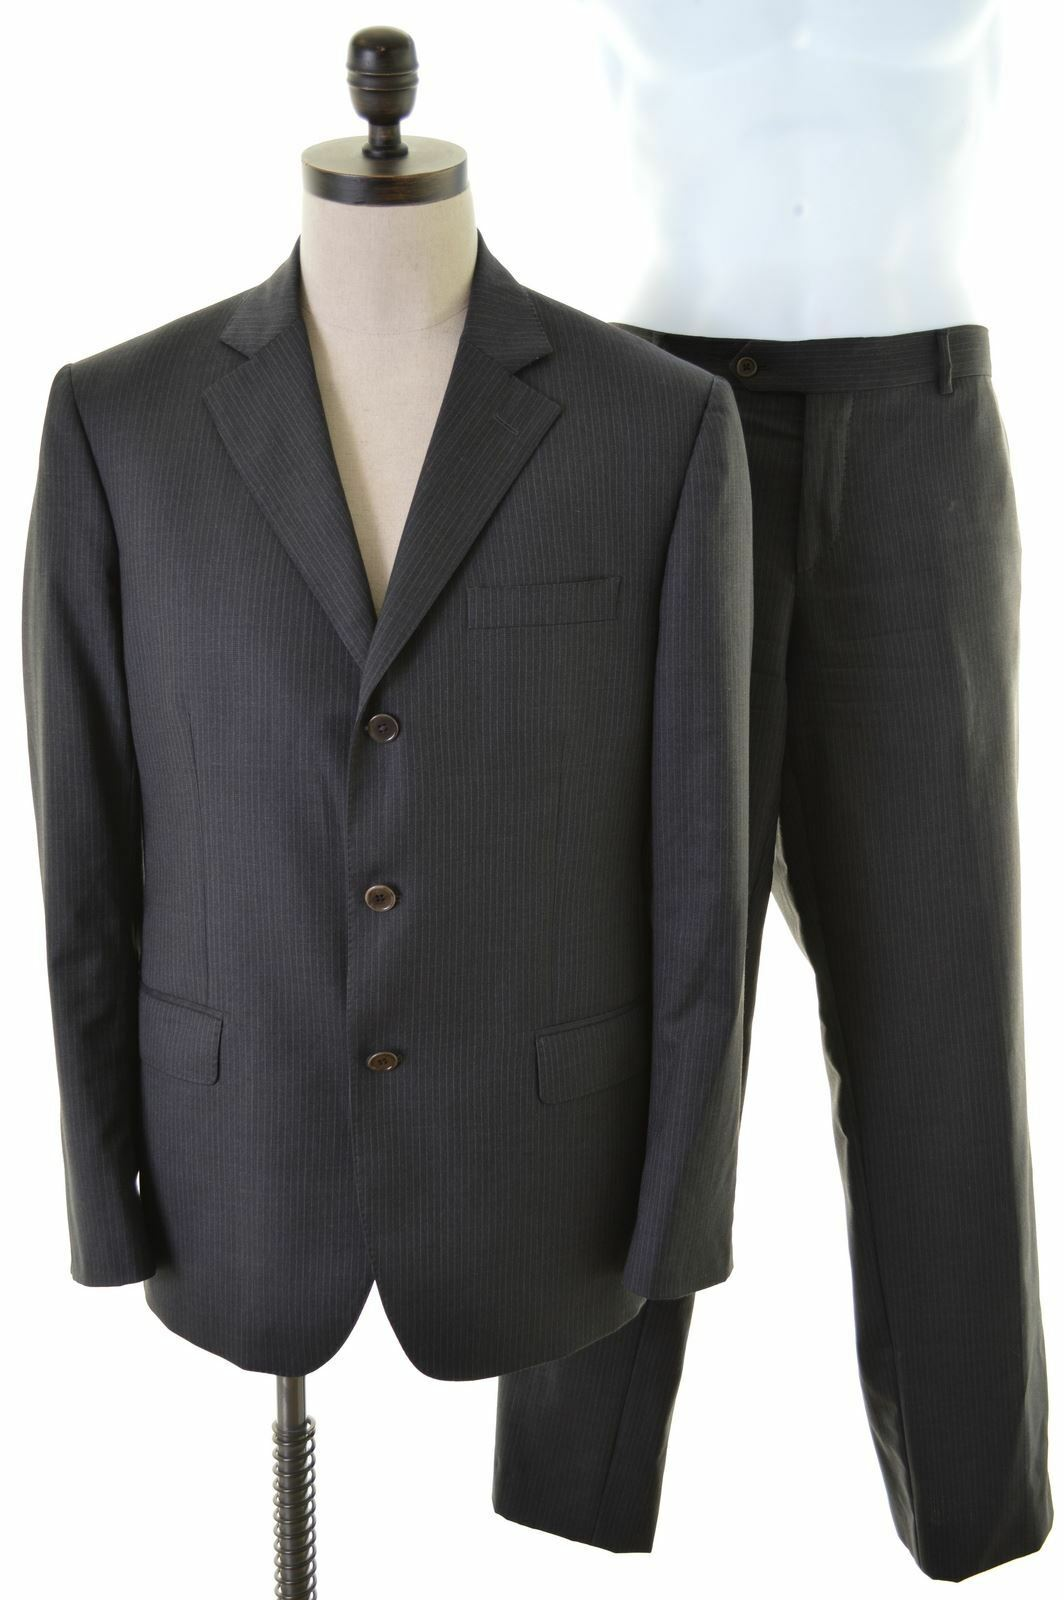 GF FERRE Mens 3 Button 2 Piece Suit Size 42 Large W36 L31 Grey Stripes Wool